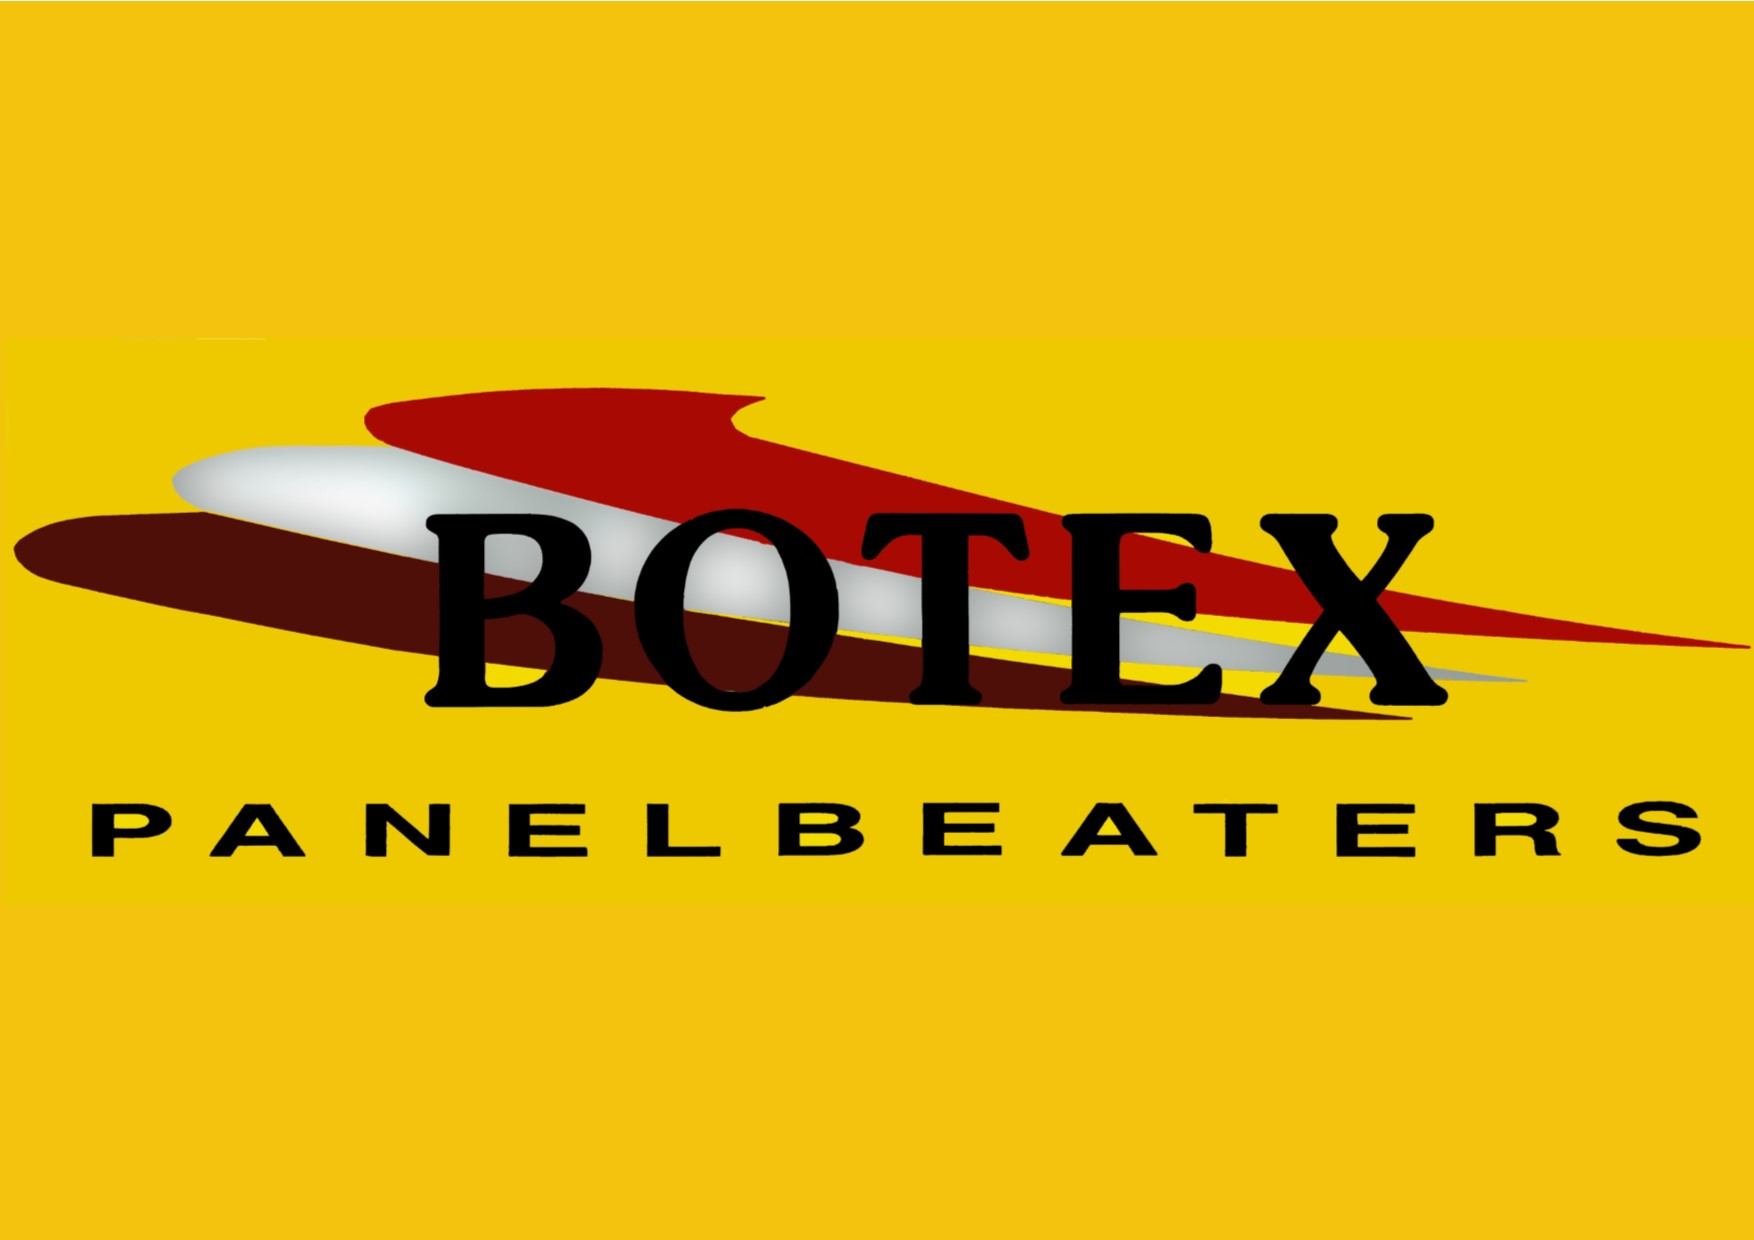 Logo of Botex Panelbeaters